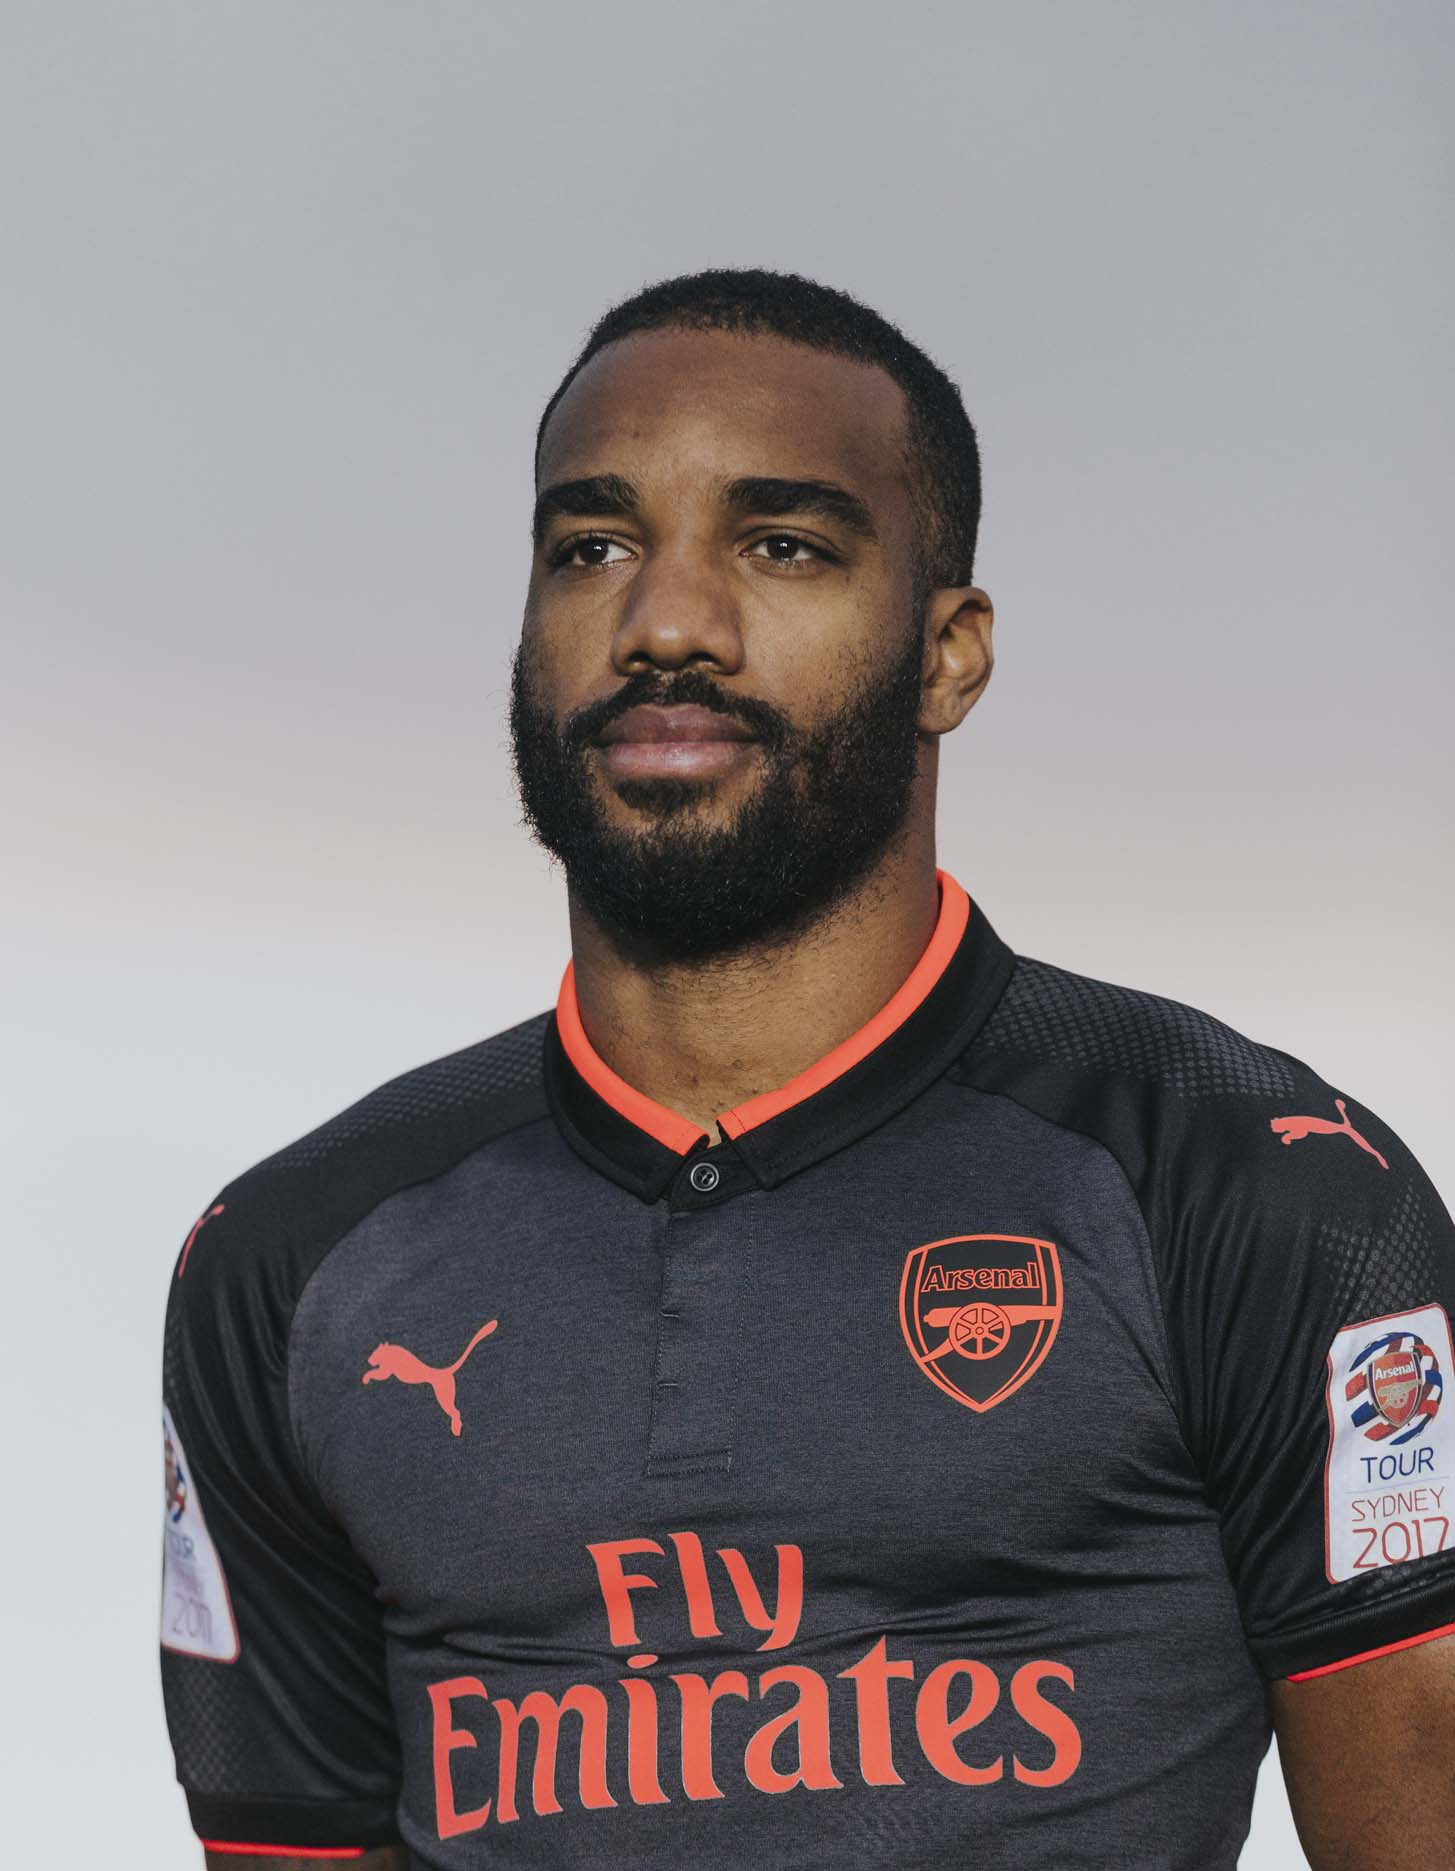 Shop the full 2017 18 Arsenal replica collection at prodirectsoccer.com 04f114645